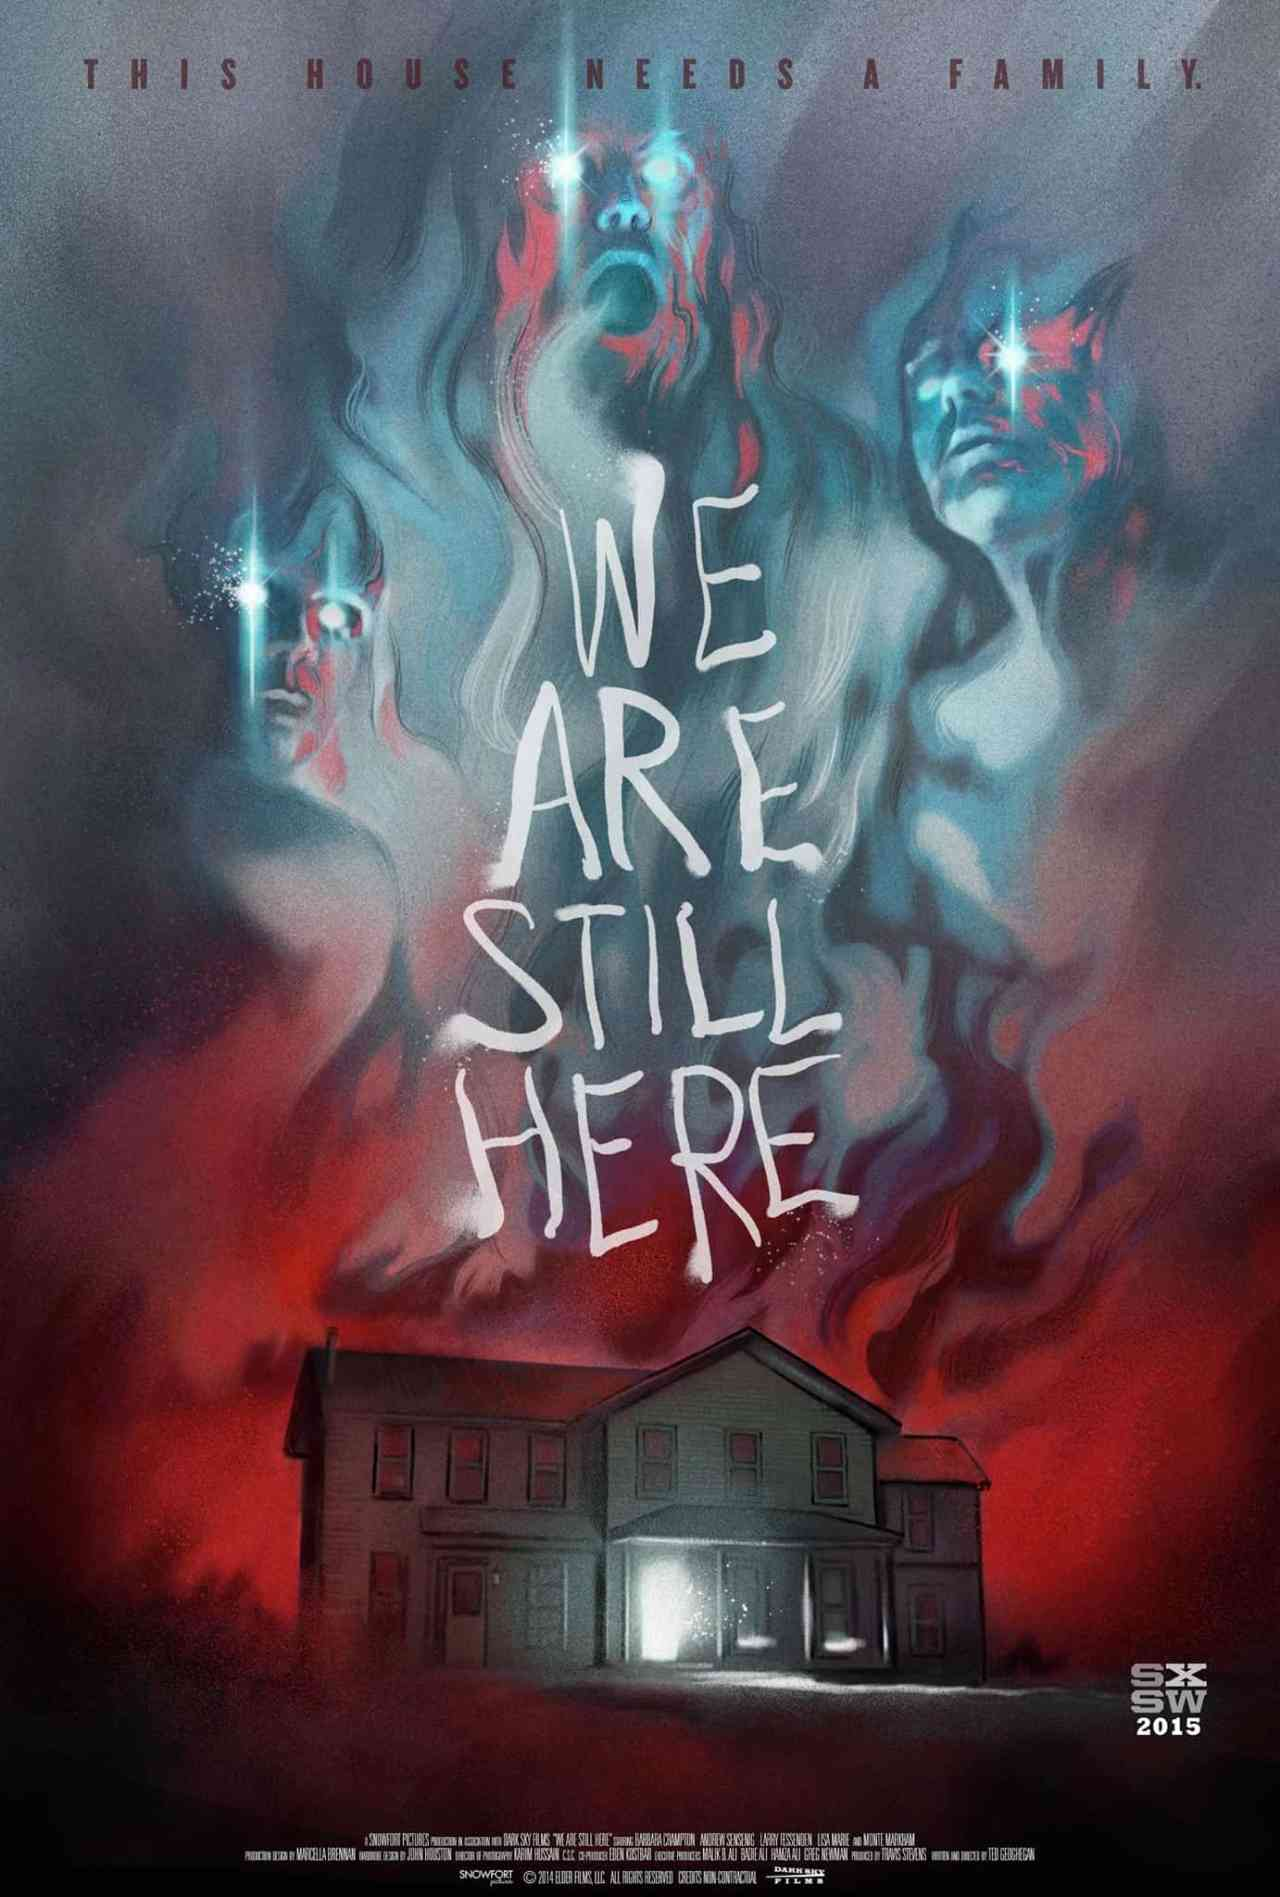 file_745203_WeAreStillHerePoster